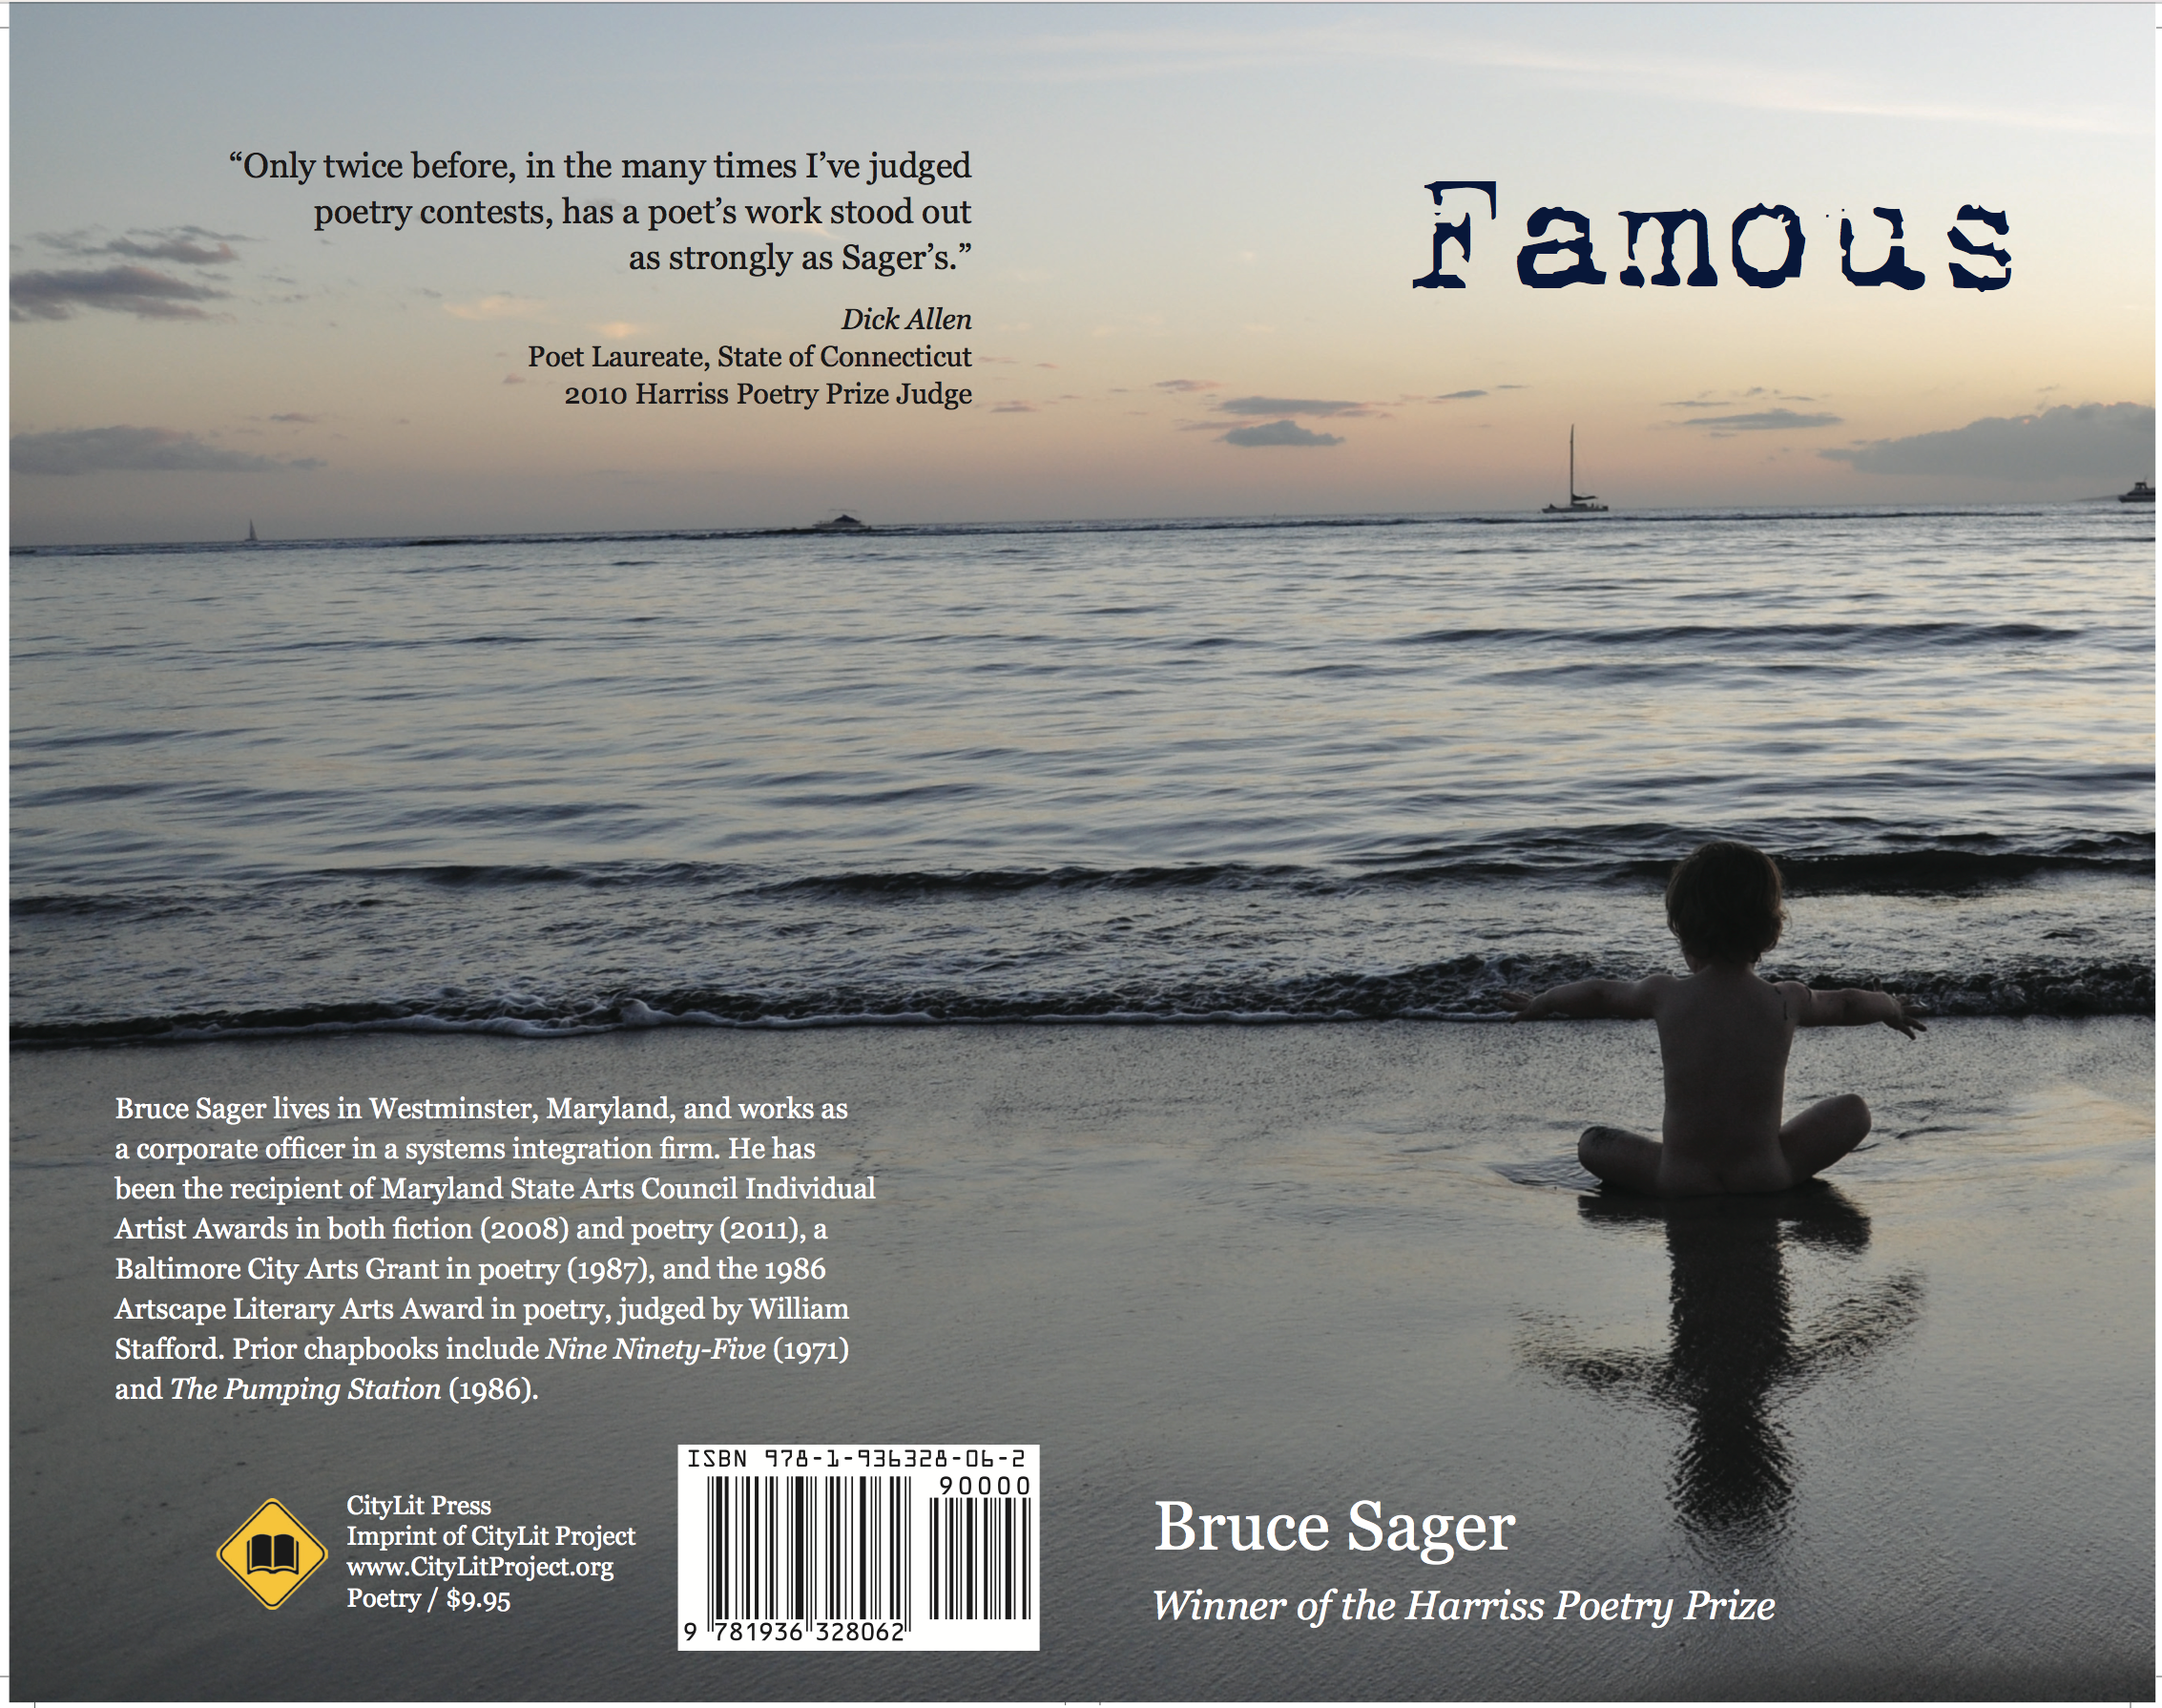 Bruce Sager's Portfolio of Poems, Short Stories, and an